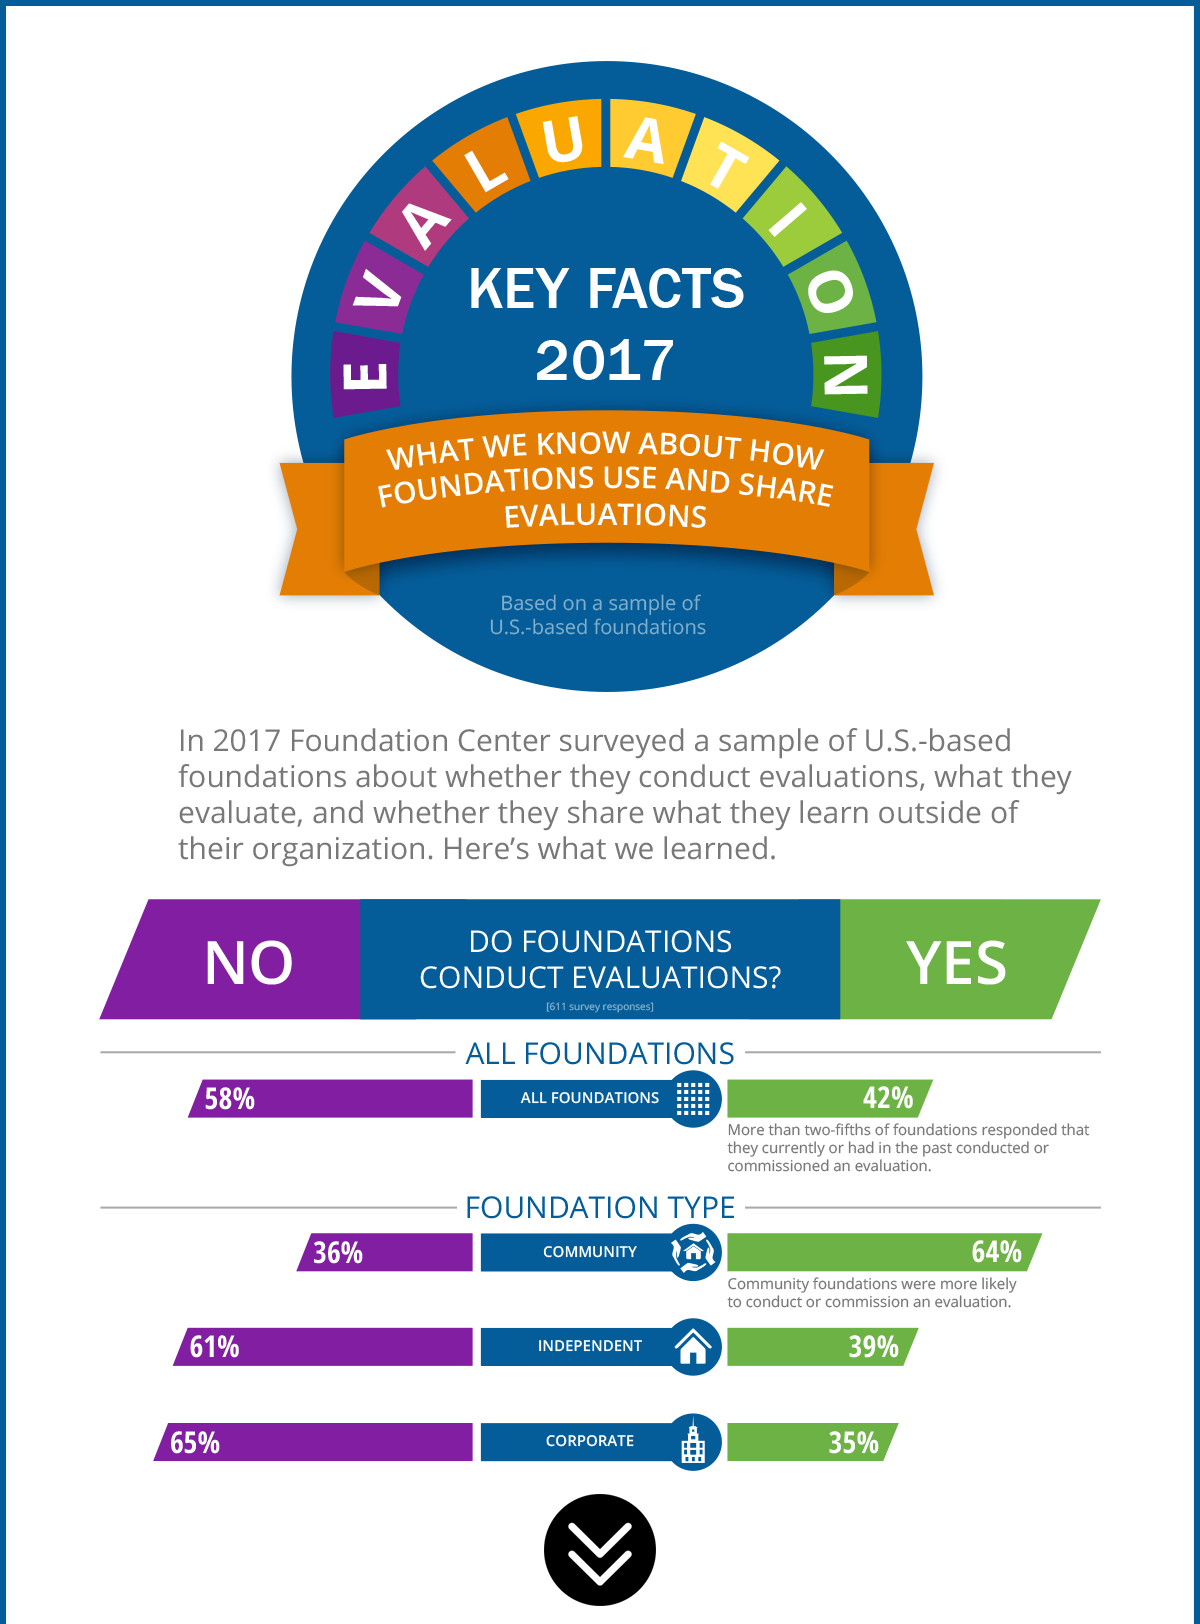 Key Facts on Foundation Evaluation, 2017